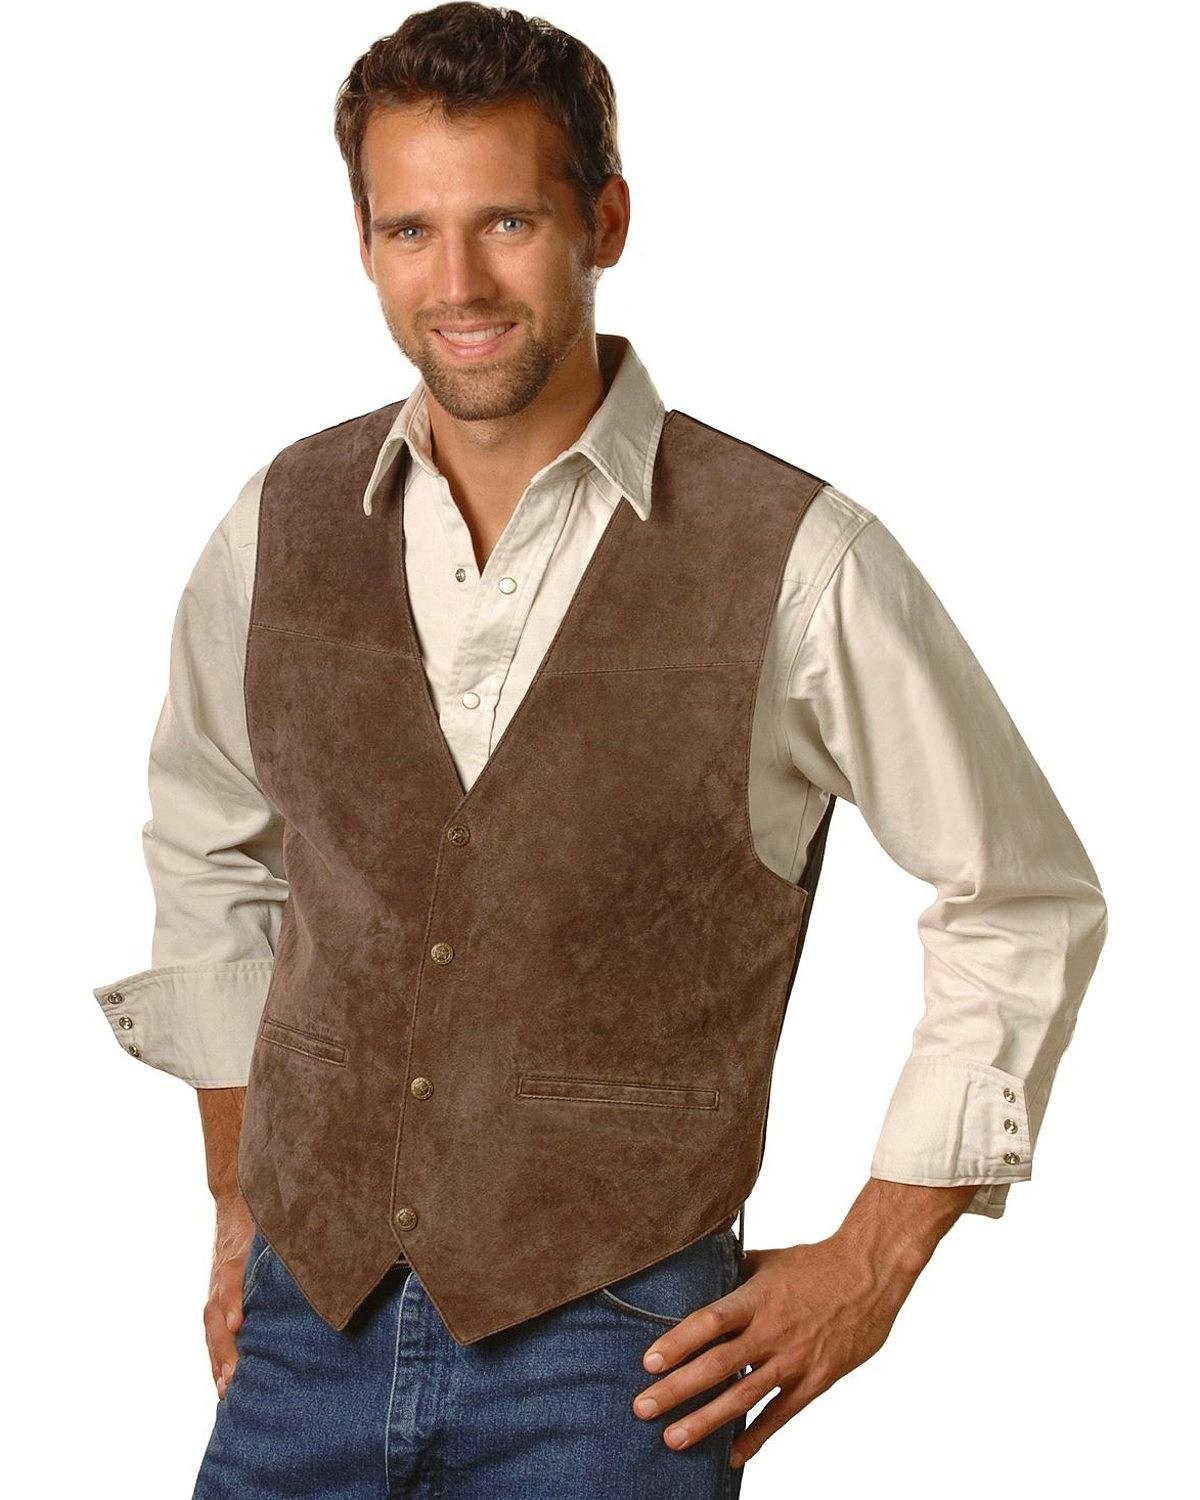 Scully Men's Suede Leather Vest Espresso XX-Large by Scully